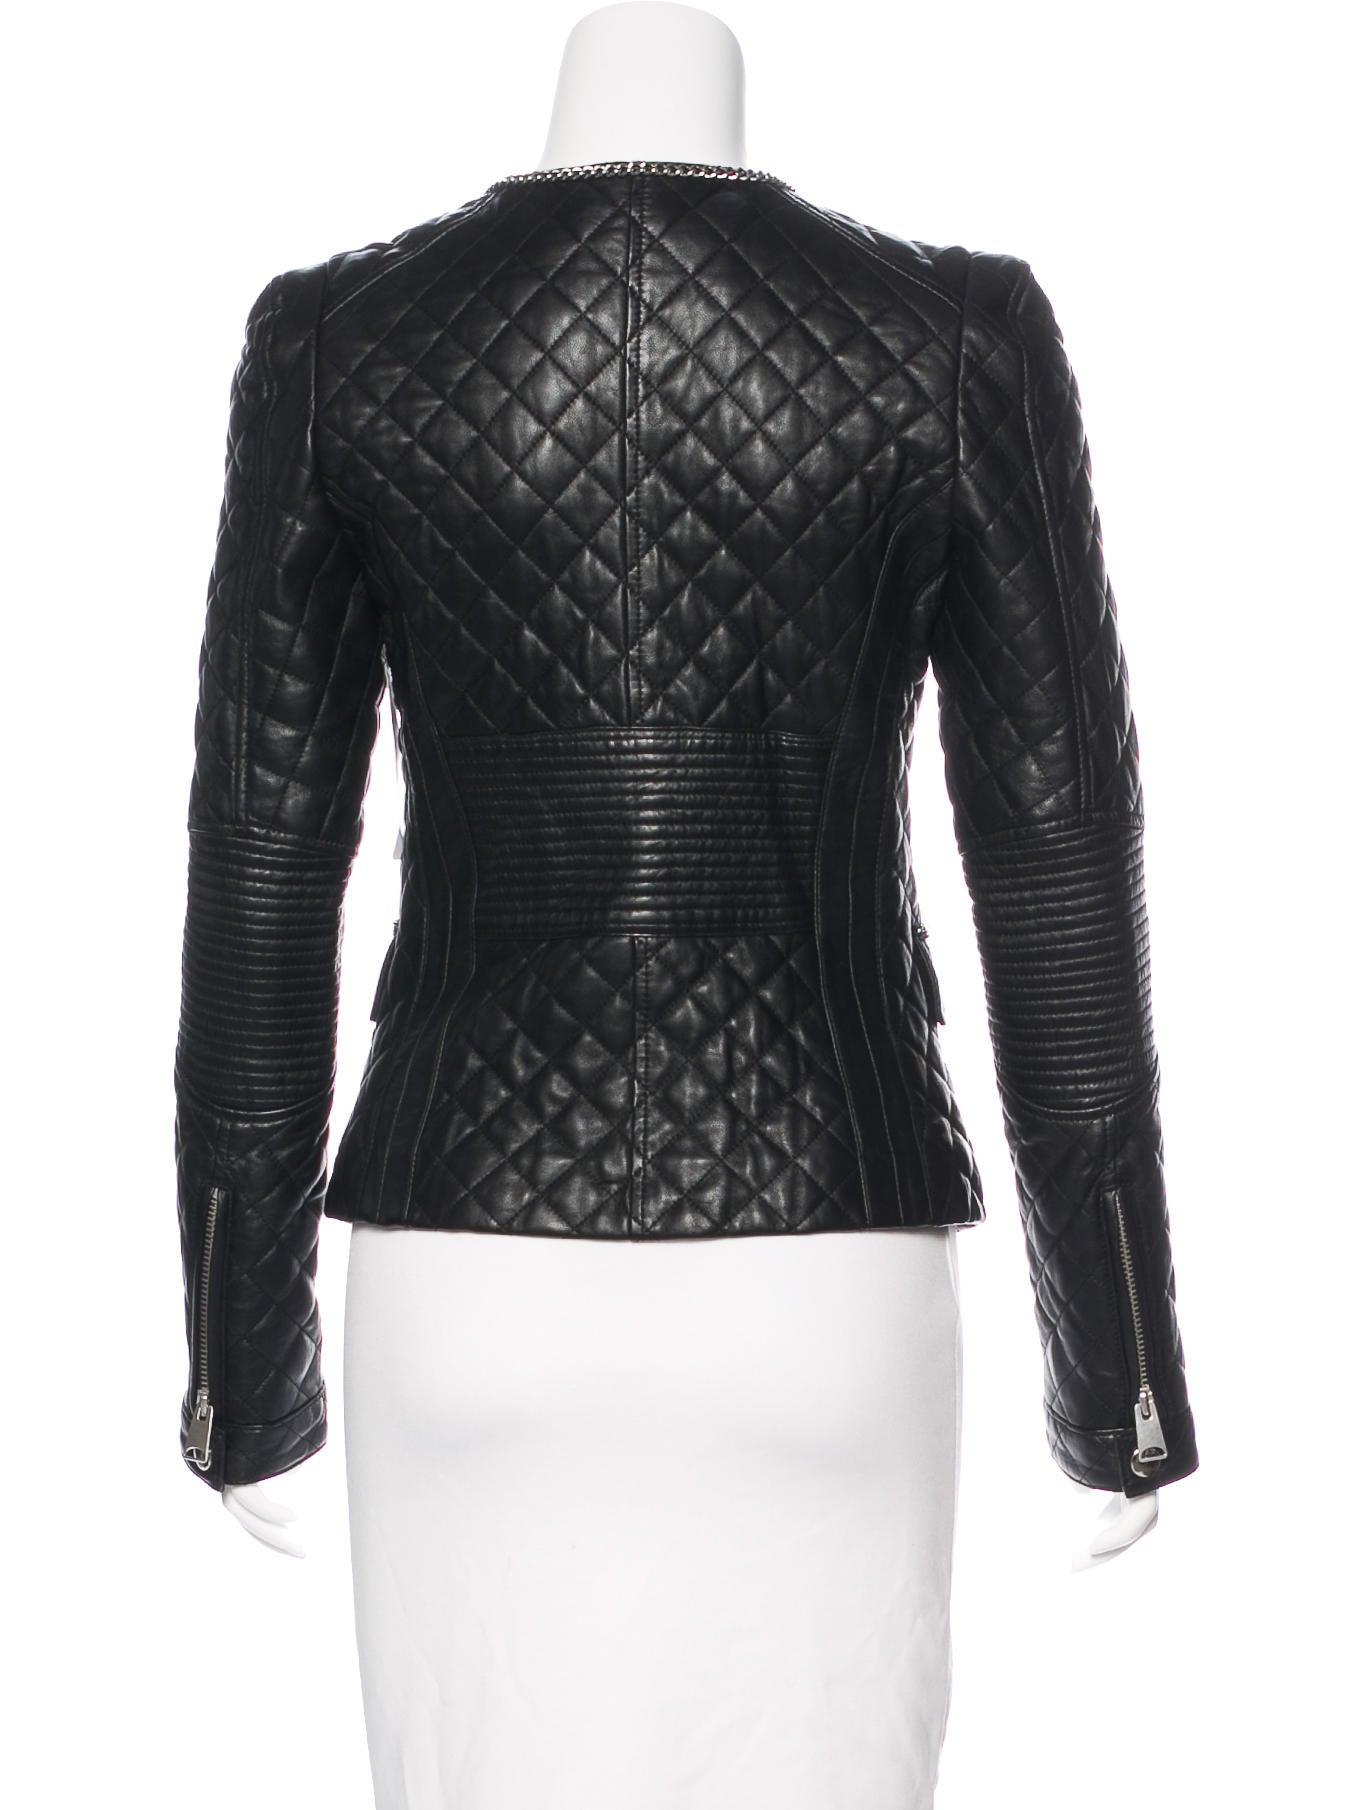 Anine Bing Quilted Leather Jacket - Clothing - W6O20687 | The RealReal : white quilted leather jacket - Adamdwight.com